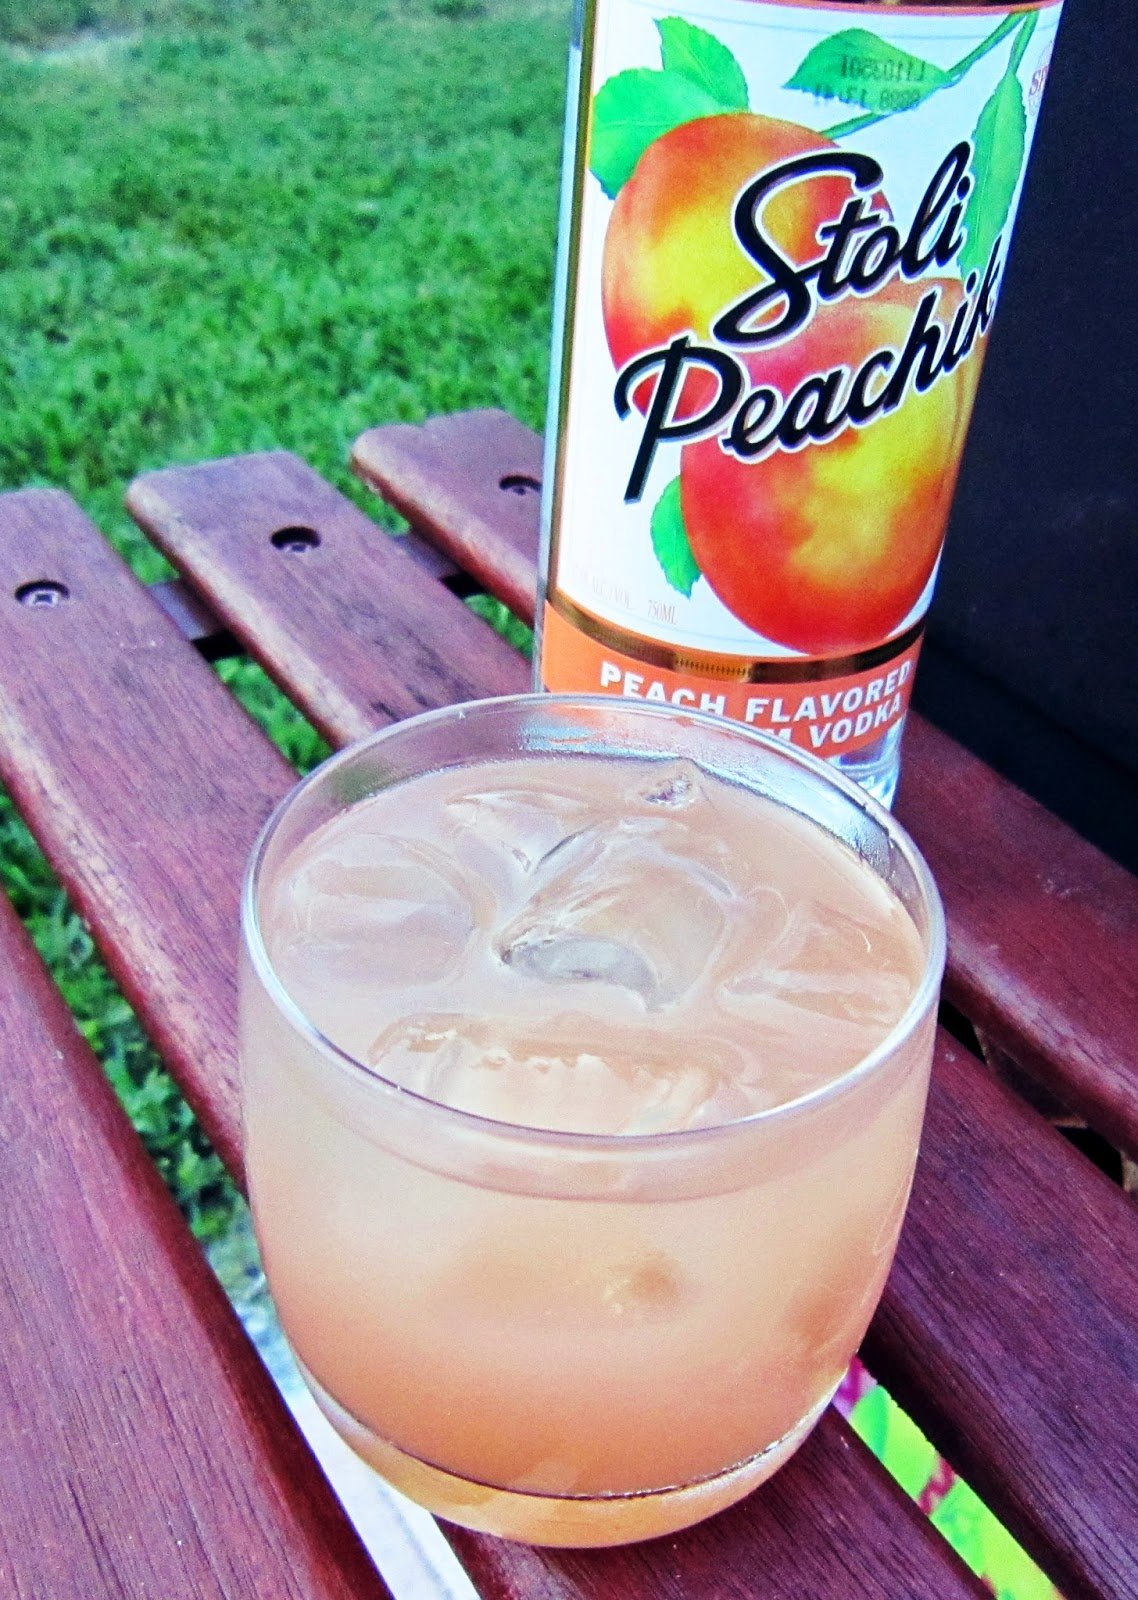 Stoli Peach Vodka Seabreeze